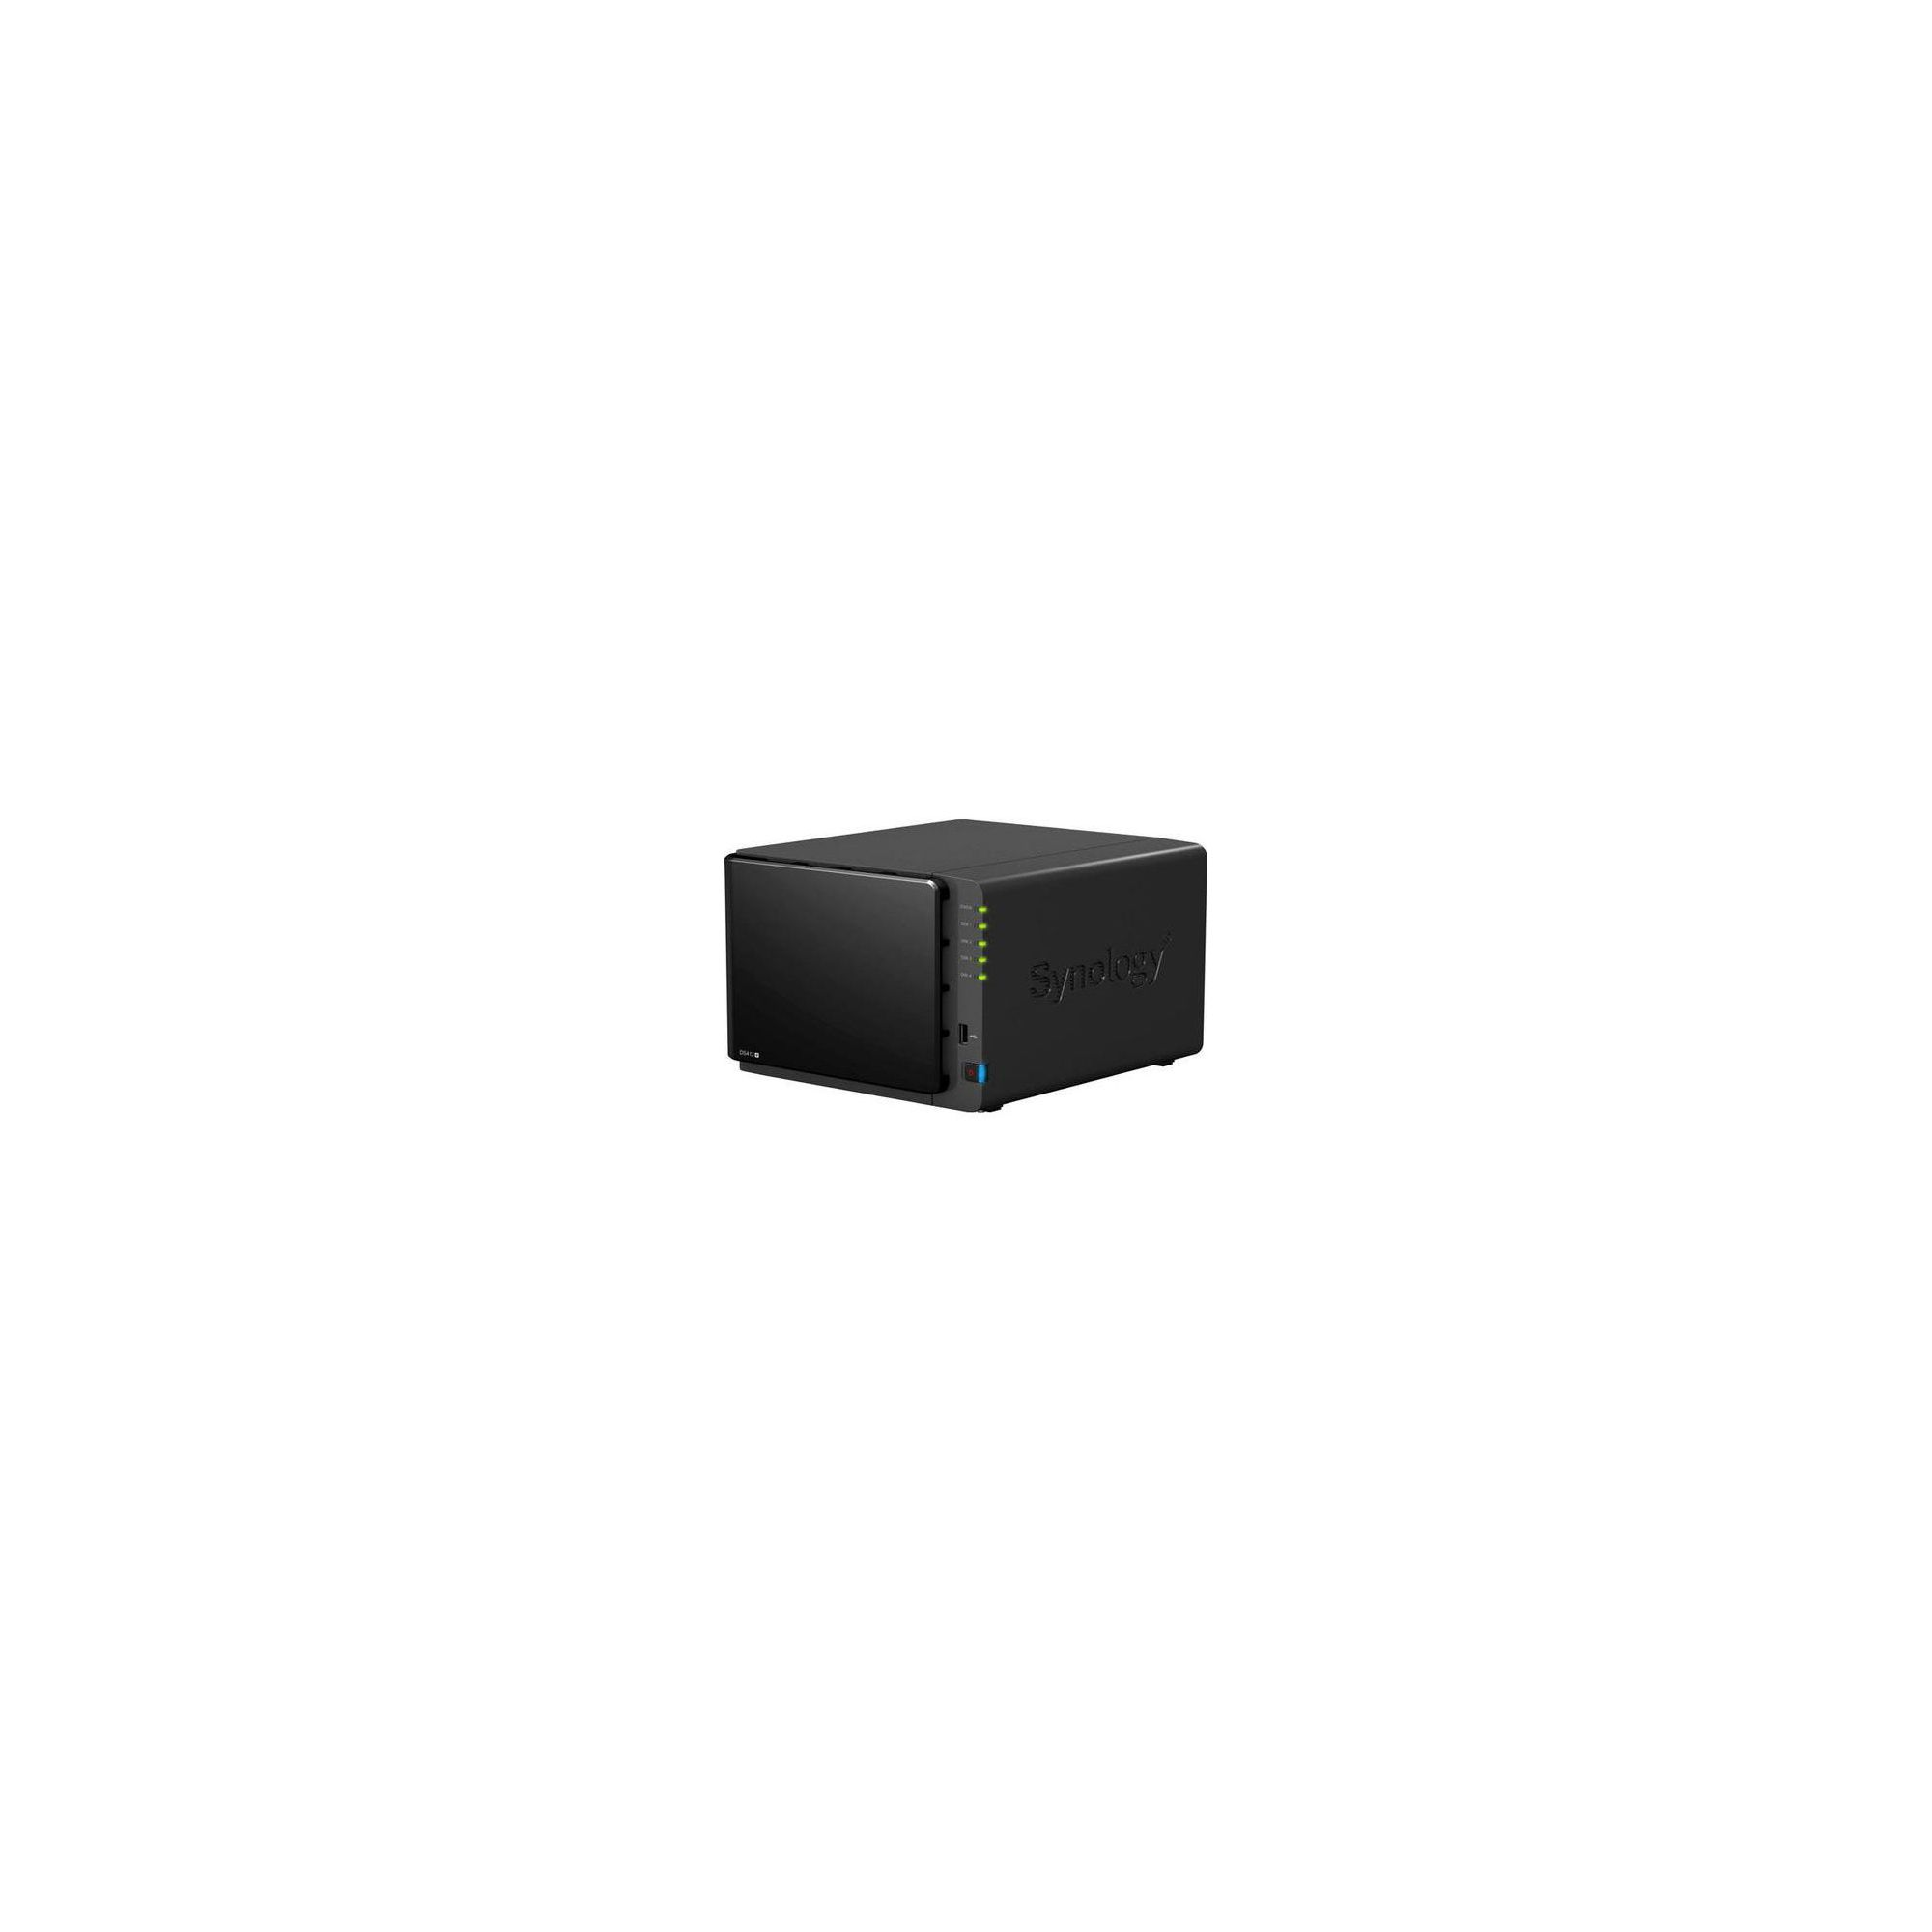 Synology DS412+ High Performance 4-Bay (0TB) NAS Server Enclosure at Tesco Direct